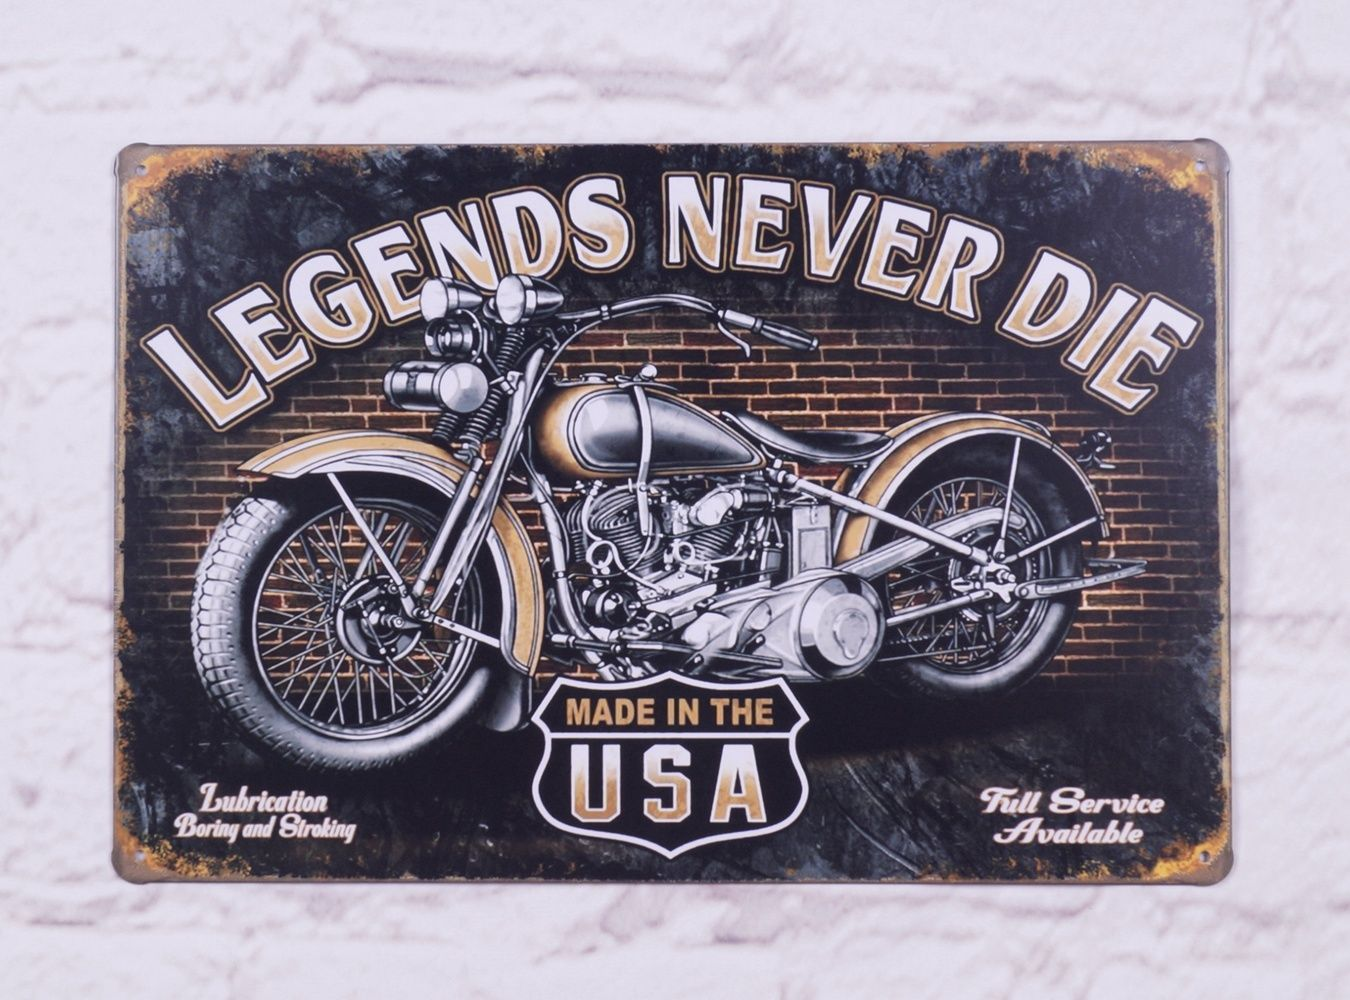 Retro Indian Motorcycle Vintage Metal Tin Signs Home Pub Bar Wall Decor  Poster $1.8